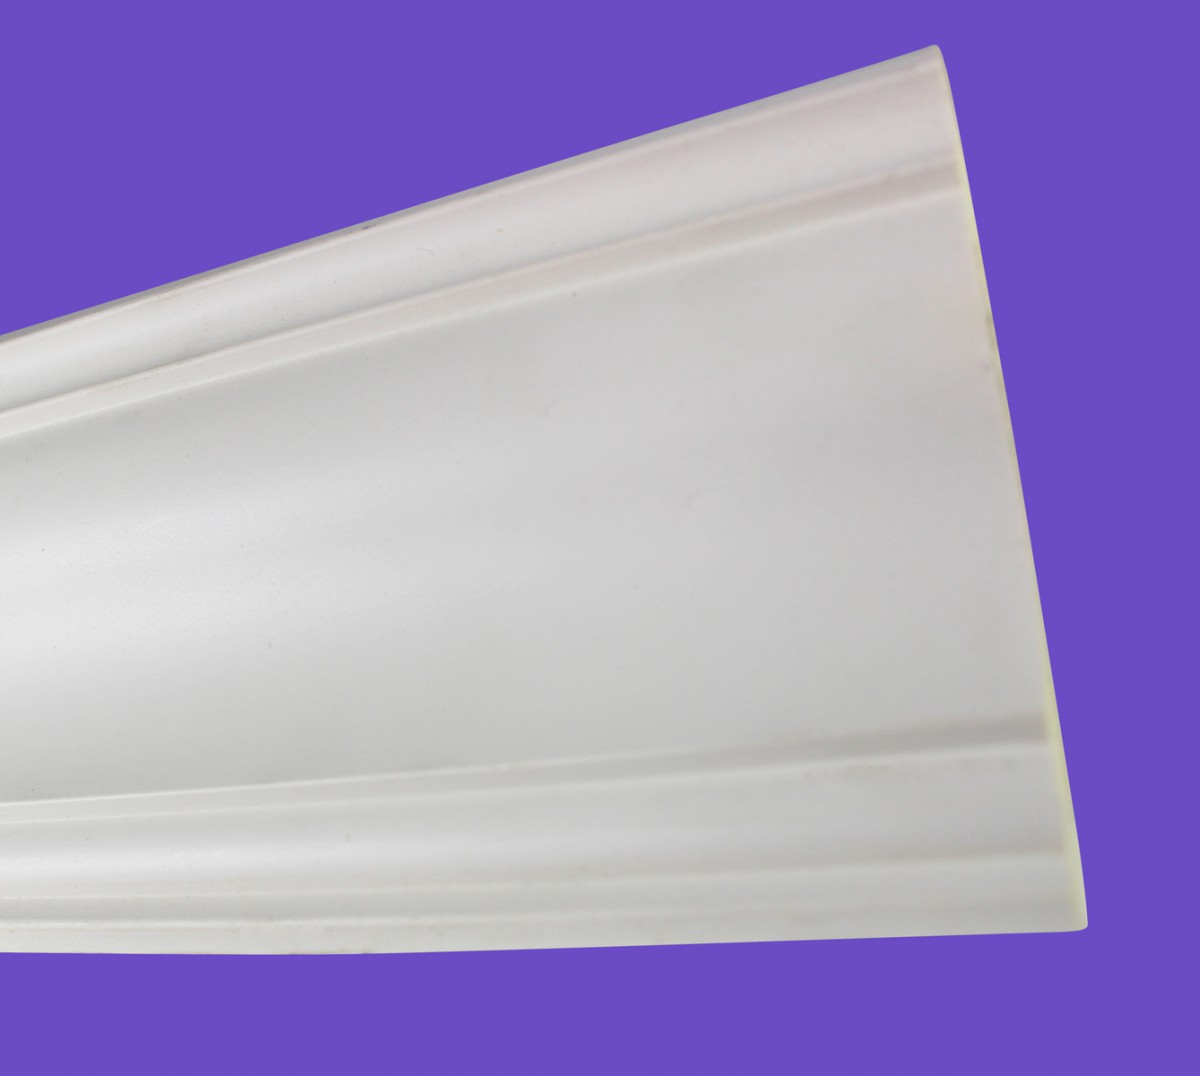 Cornice White Urethane Sample of 11772 23.5 Long Cornice Cornice Moulding Cornice Molding